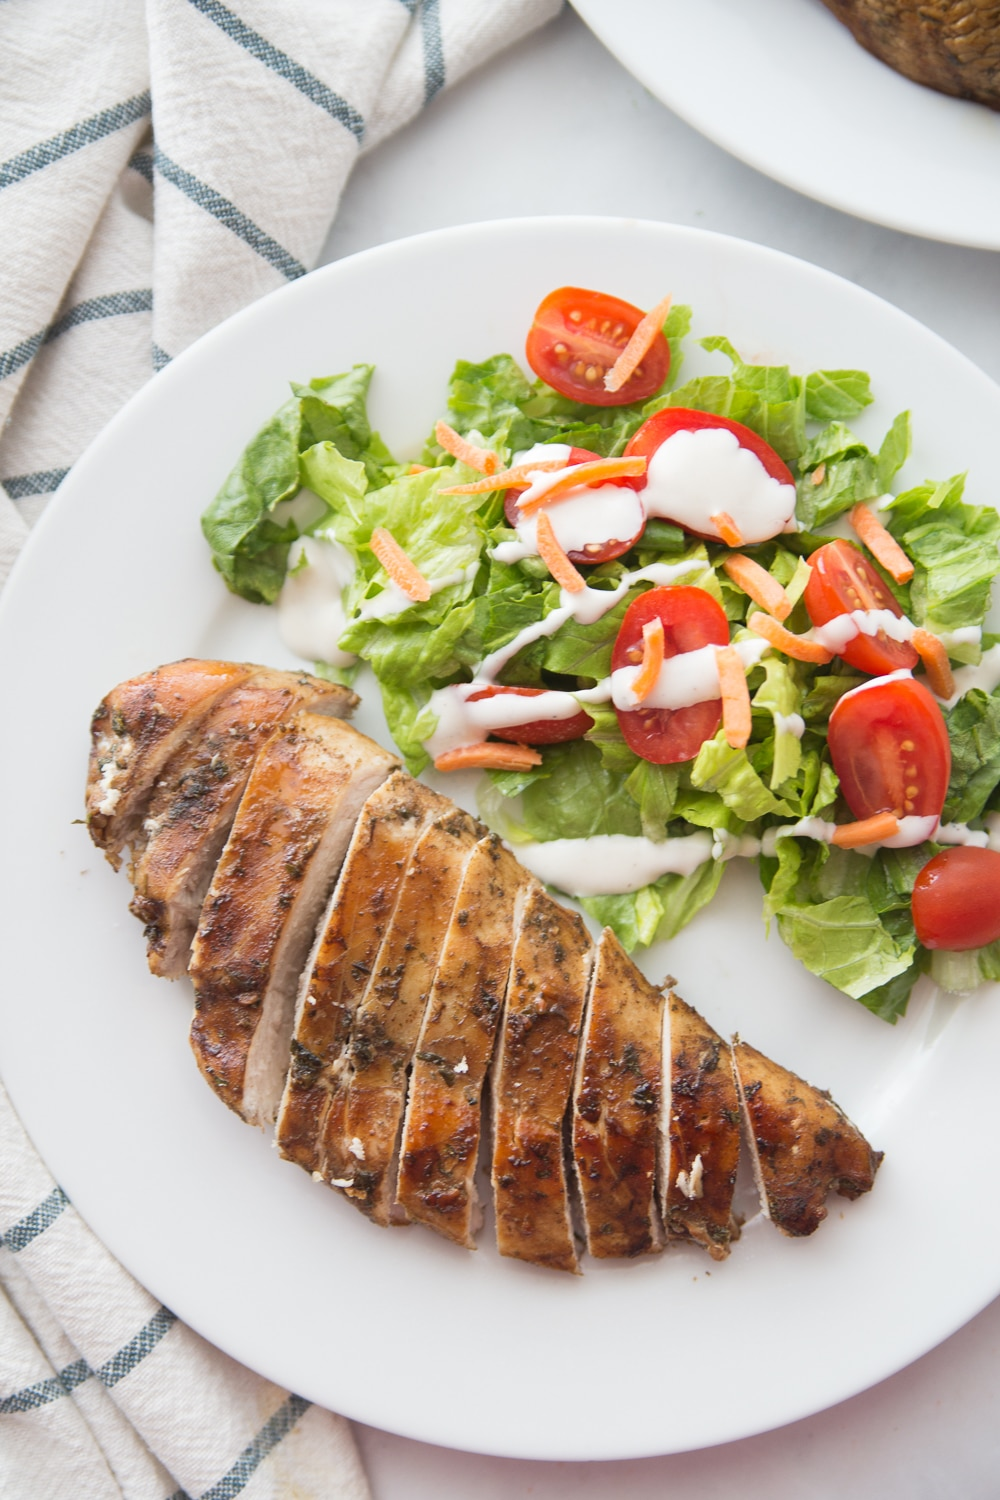 Sliced balsamic grilled chicken on a plate with salad